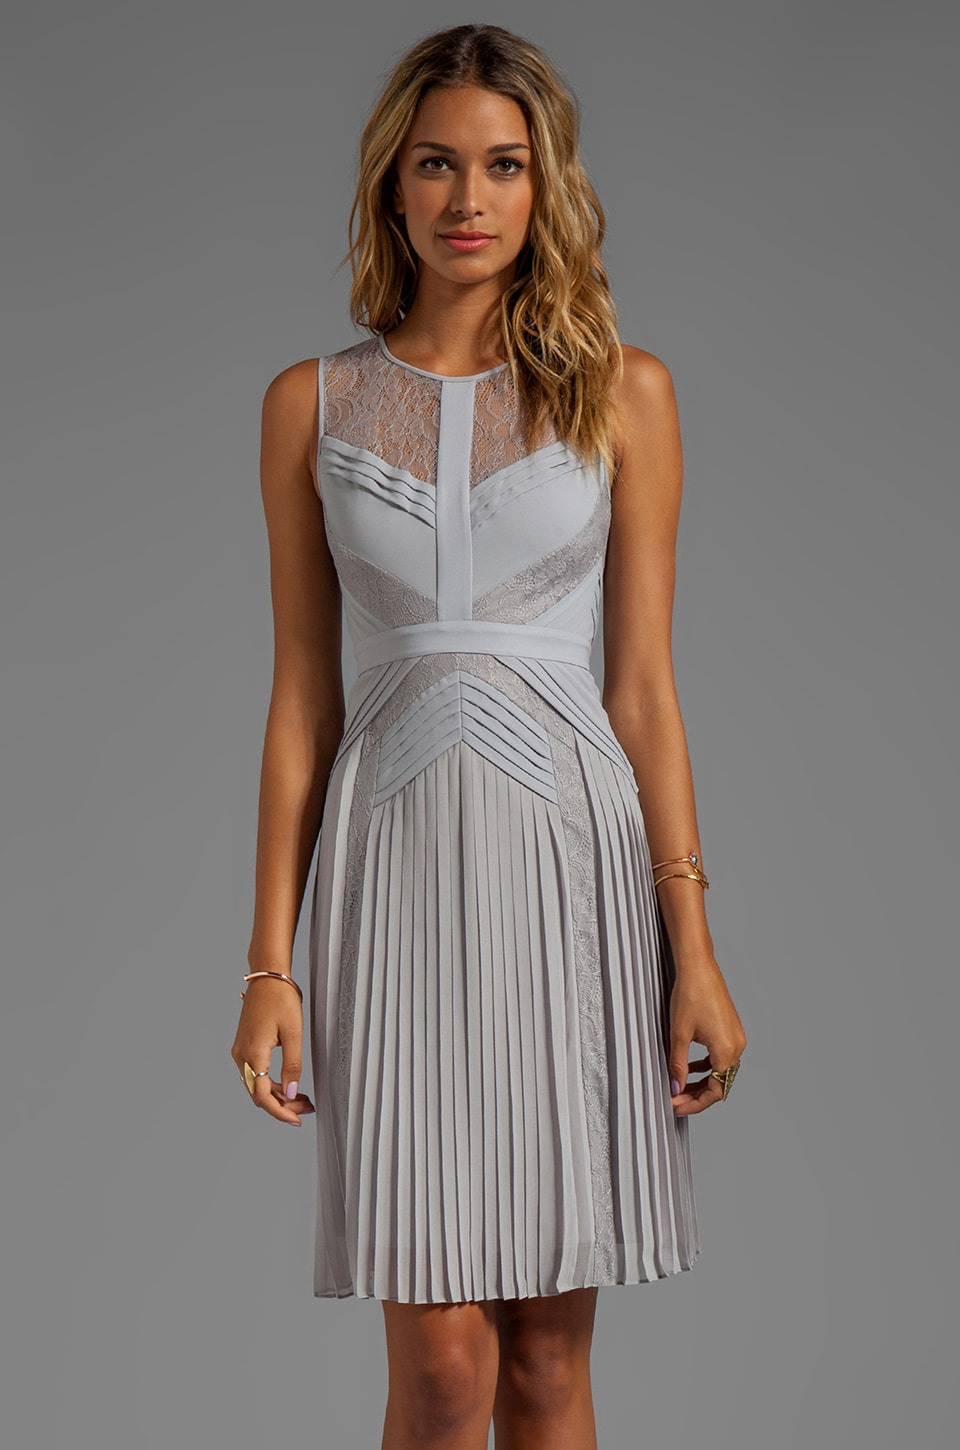 BCBGMAXAZRIA Sleeveless Dress in Glacier